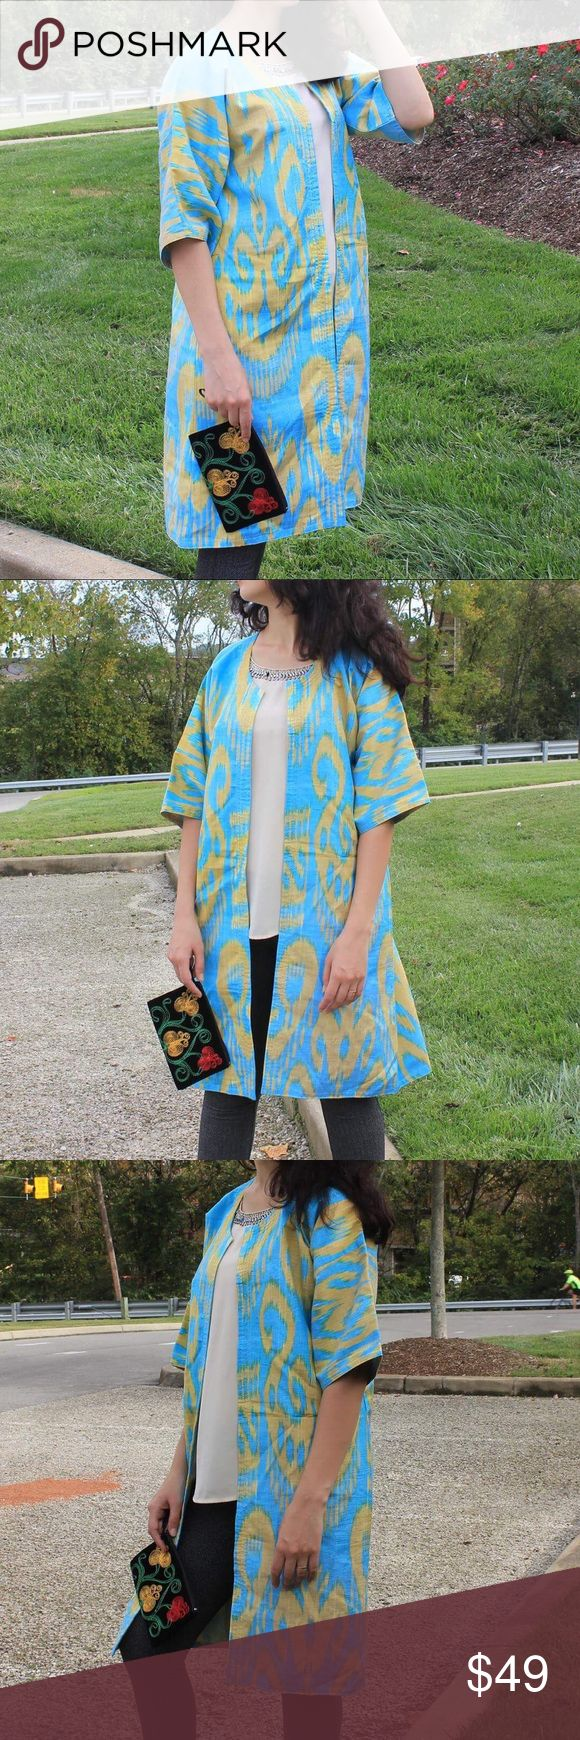 Blue Kimono Aztec print cardigan! Ikat Silk Chapan New! No tags! Green Cardigan! ikat Jackets & Coats Trench Coats